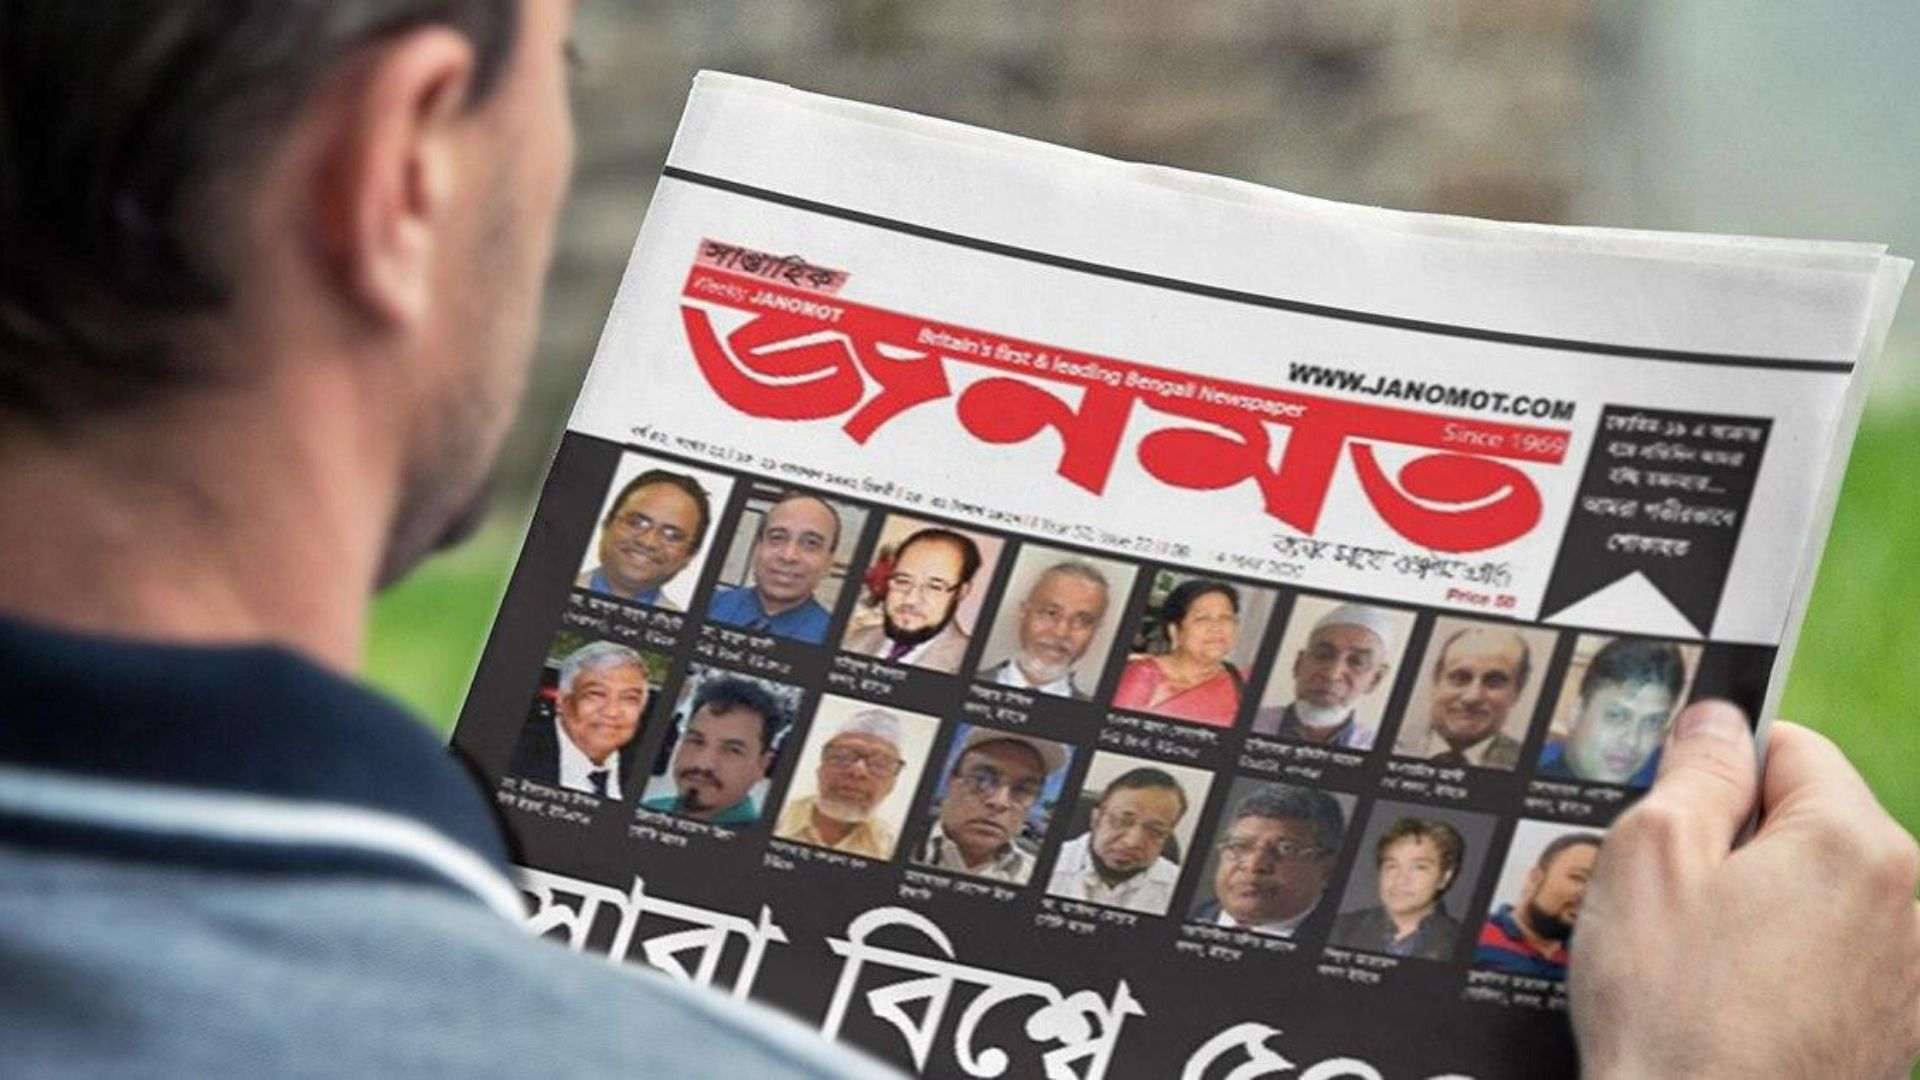 Bangla Online Newspaper | Bengali News 24 | Bangla Top News | janomot.com